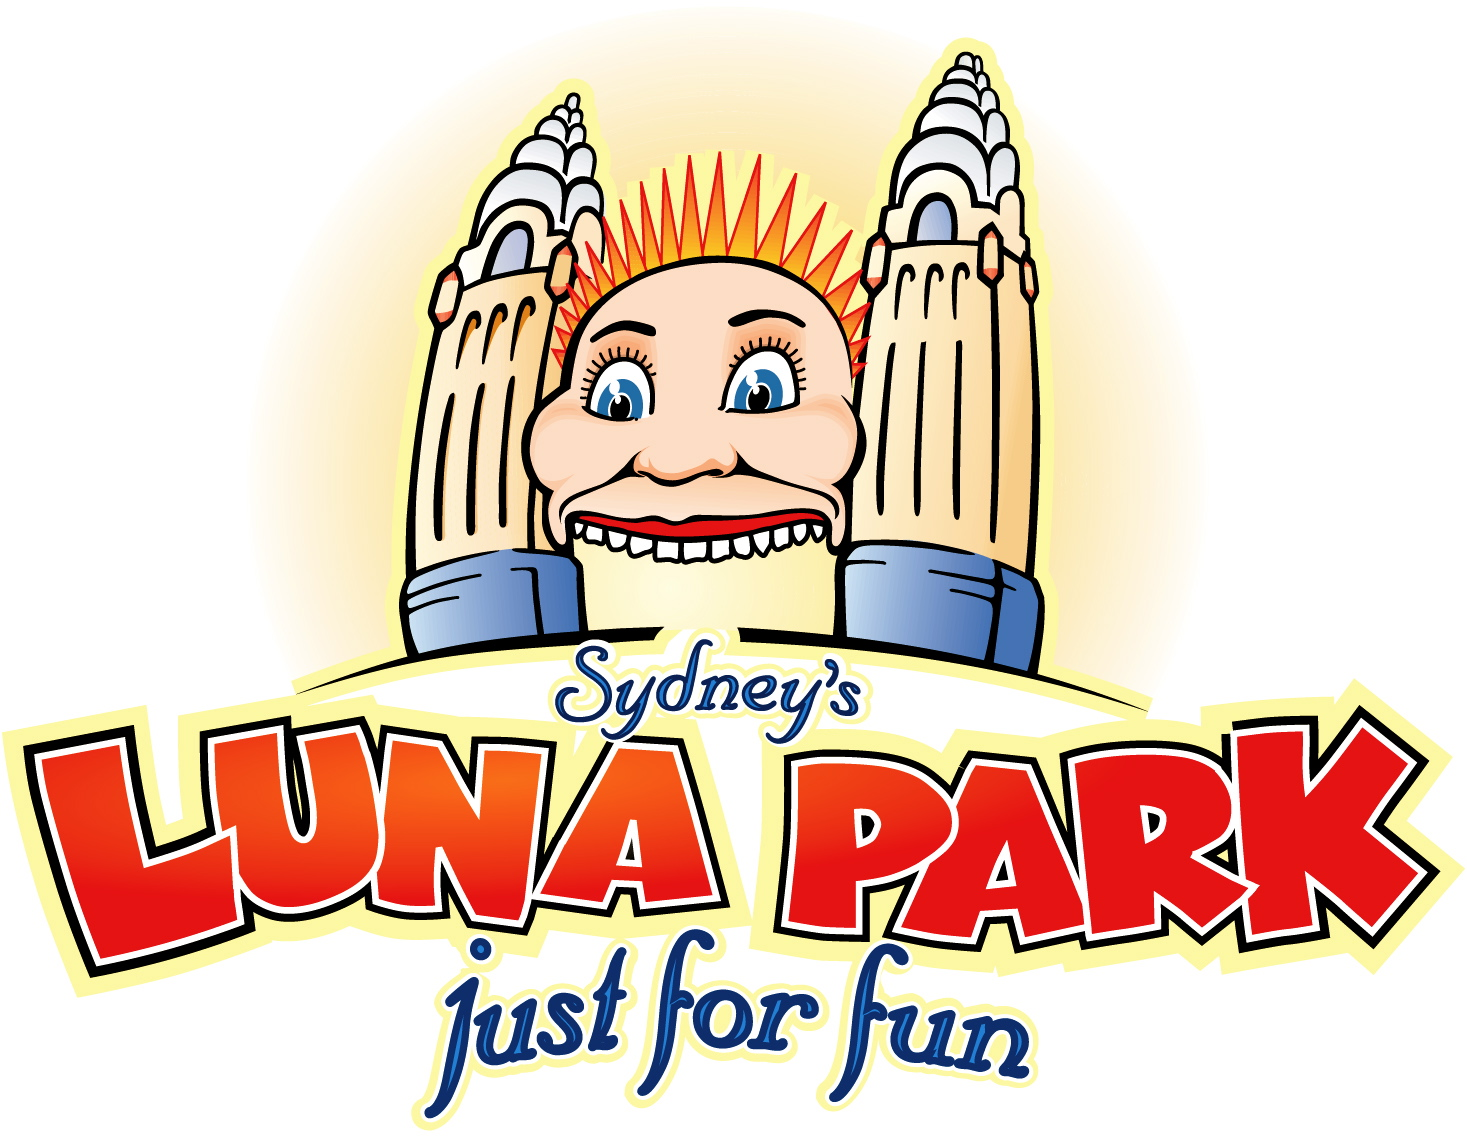 Just looking, thanks : Sydney's Luna Park: the